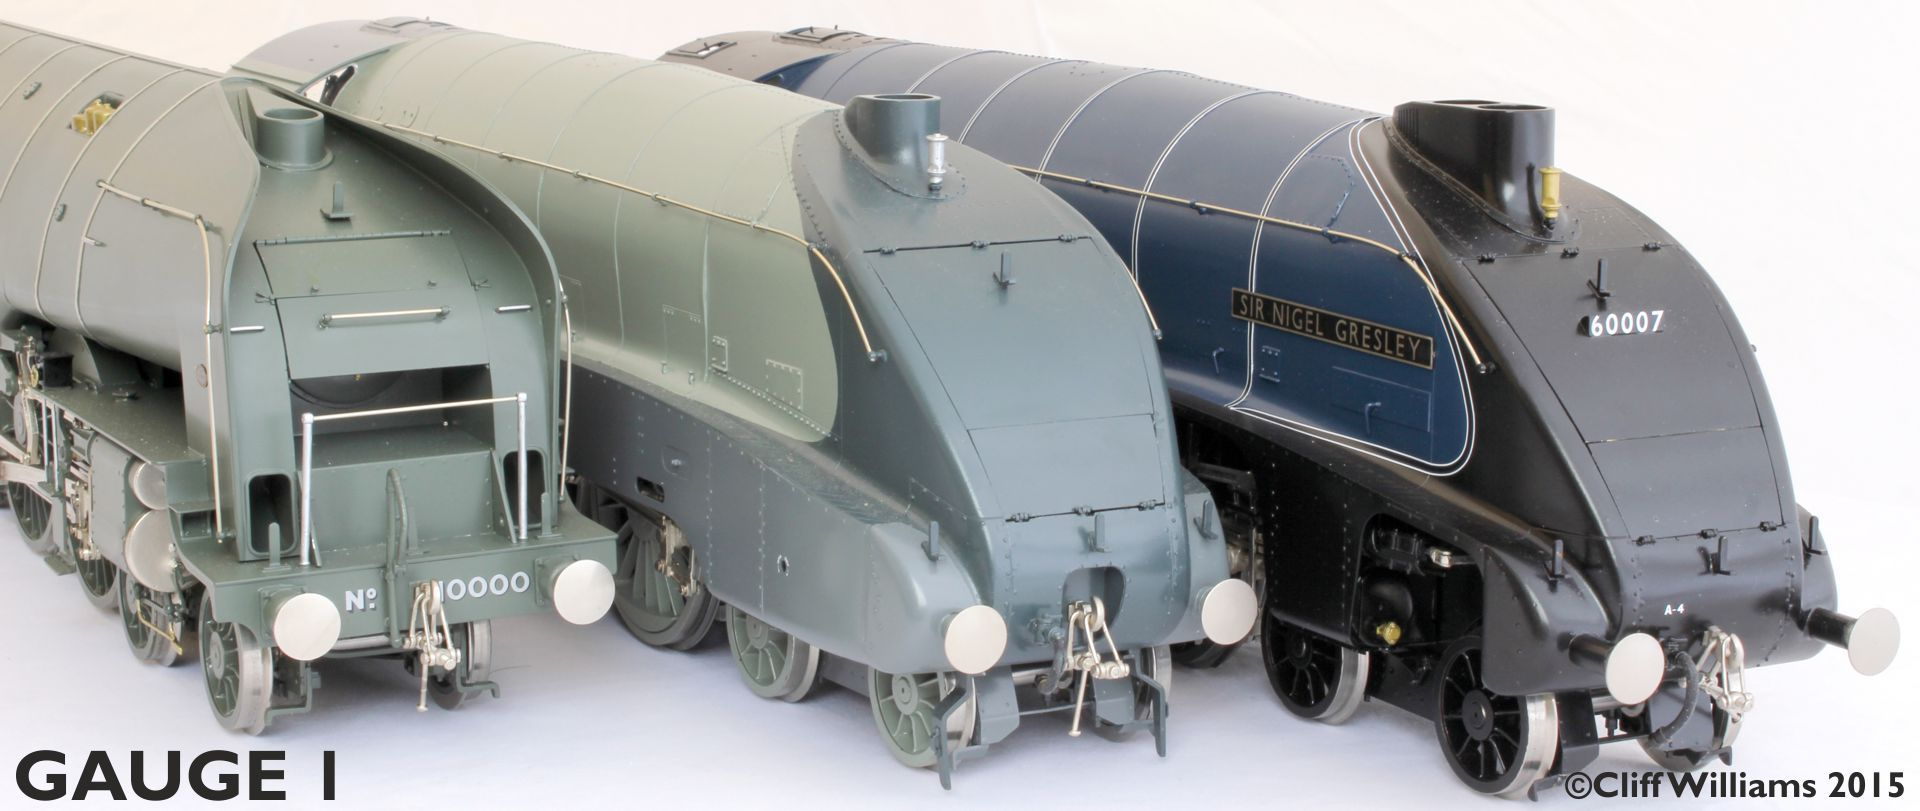 Find out more about our Gauge 1 locos available from stock here in the UK.